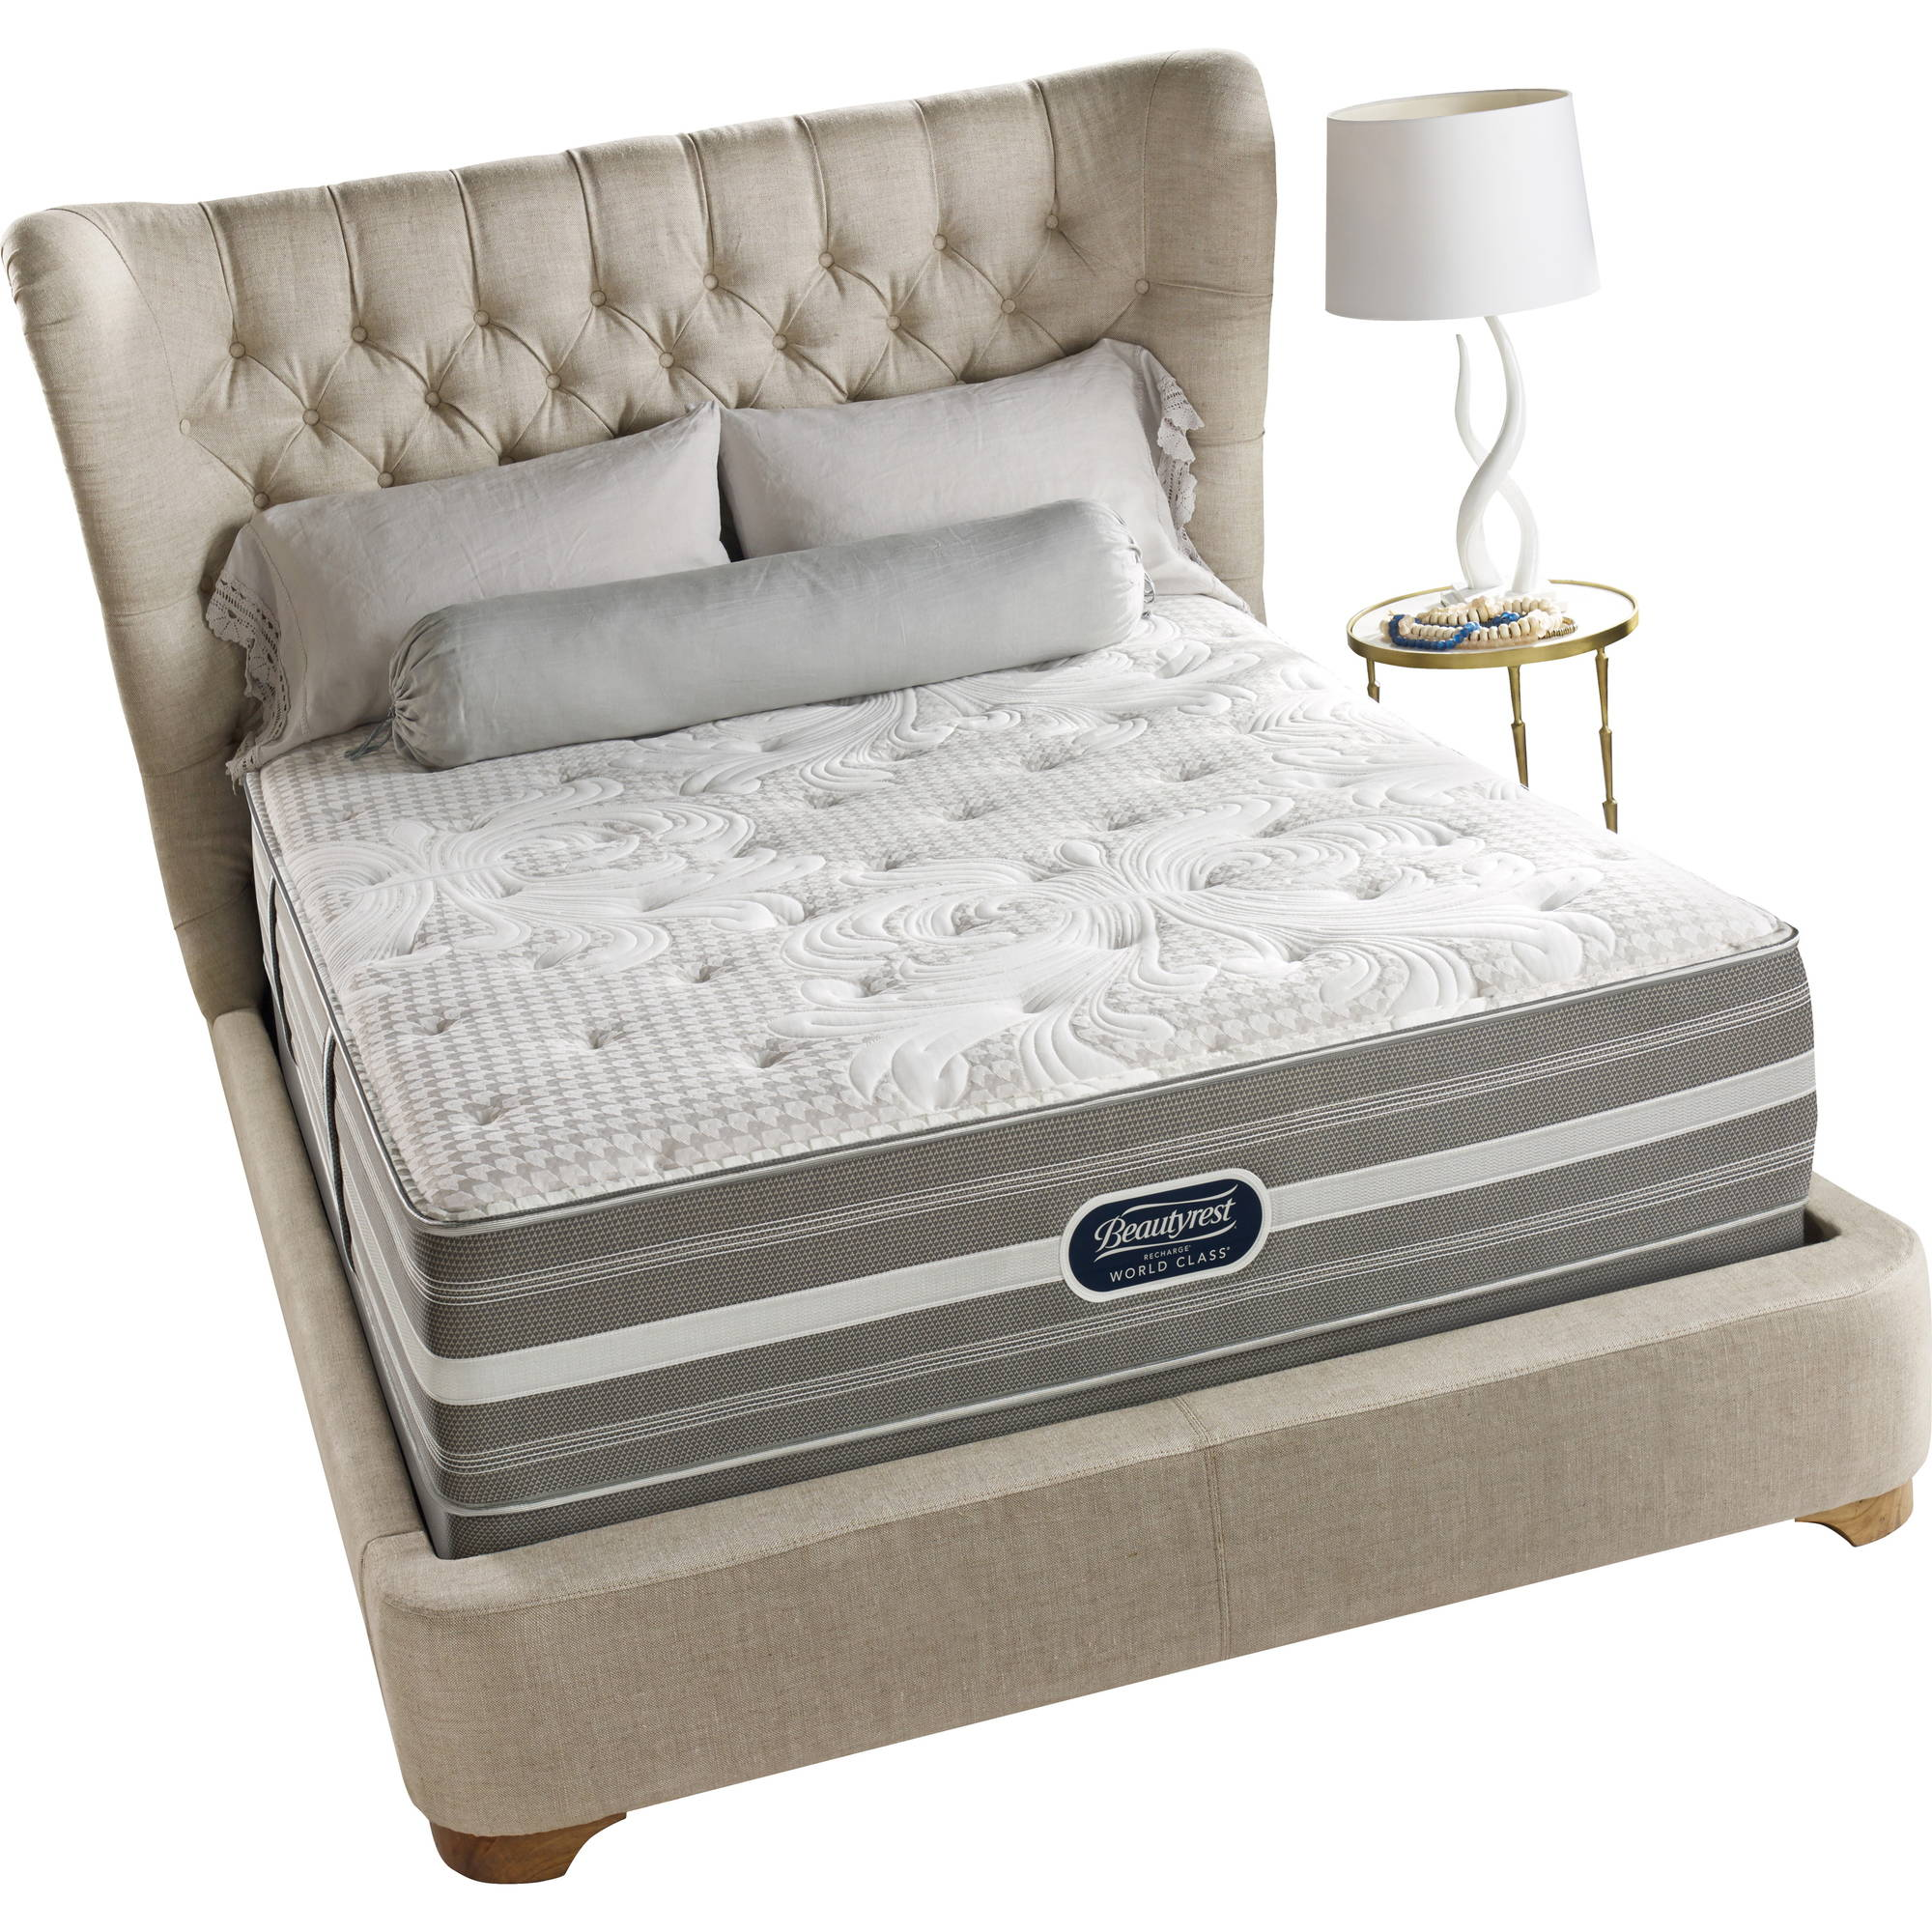 "Beautyrest Recharge World Class Duomo 14.5"" Plush Mattress, Multiple Sizes"